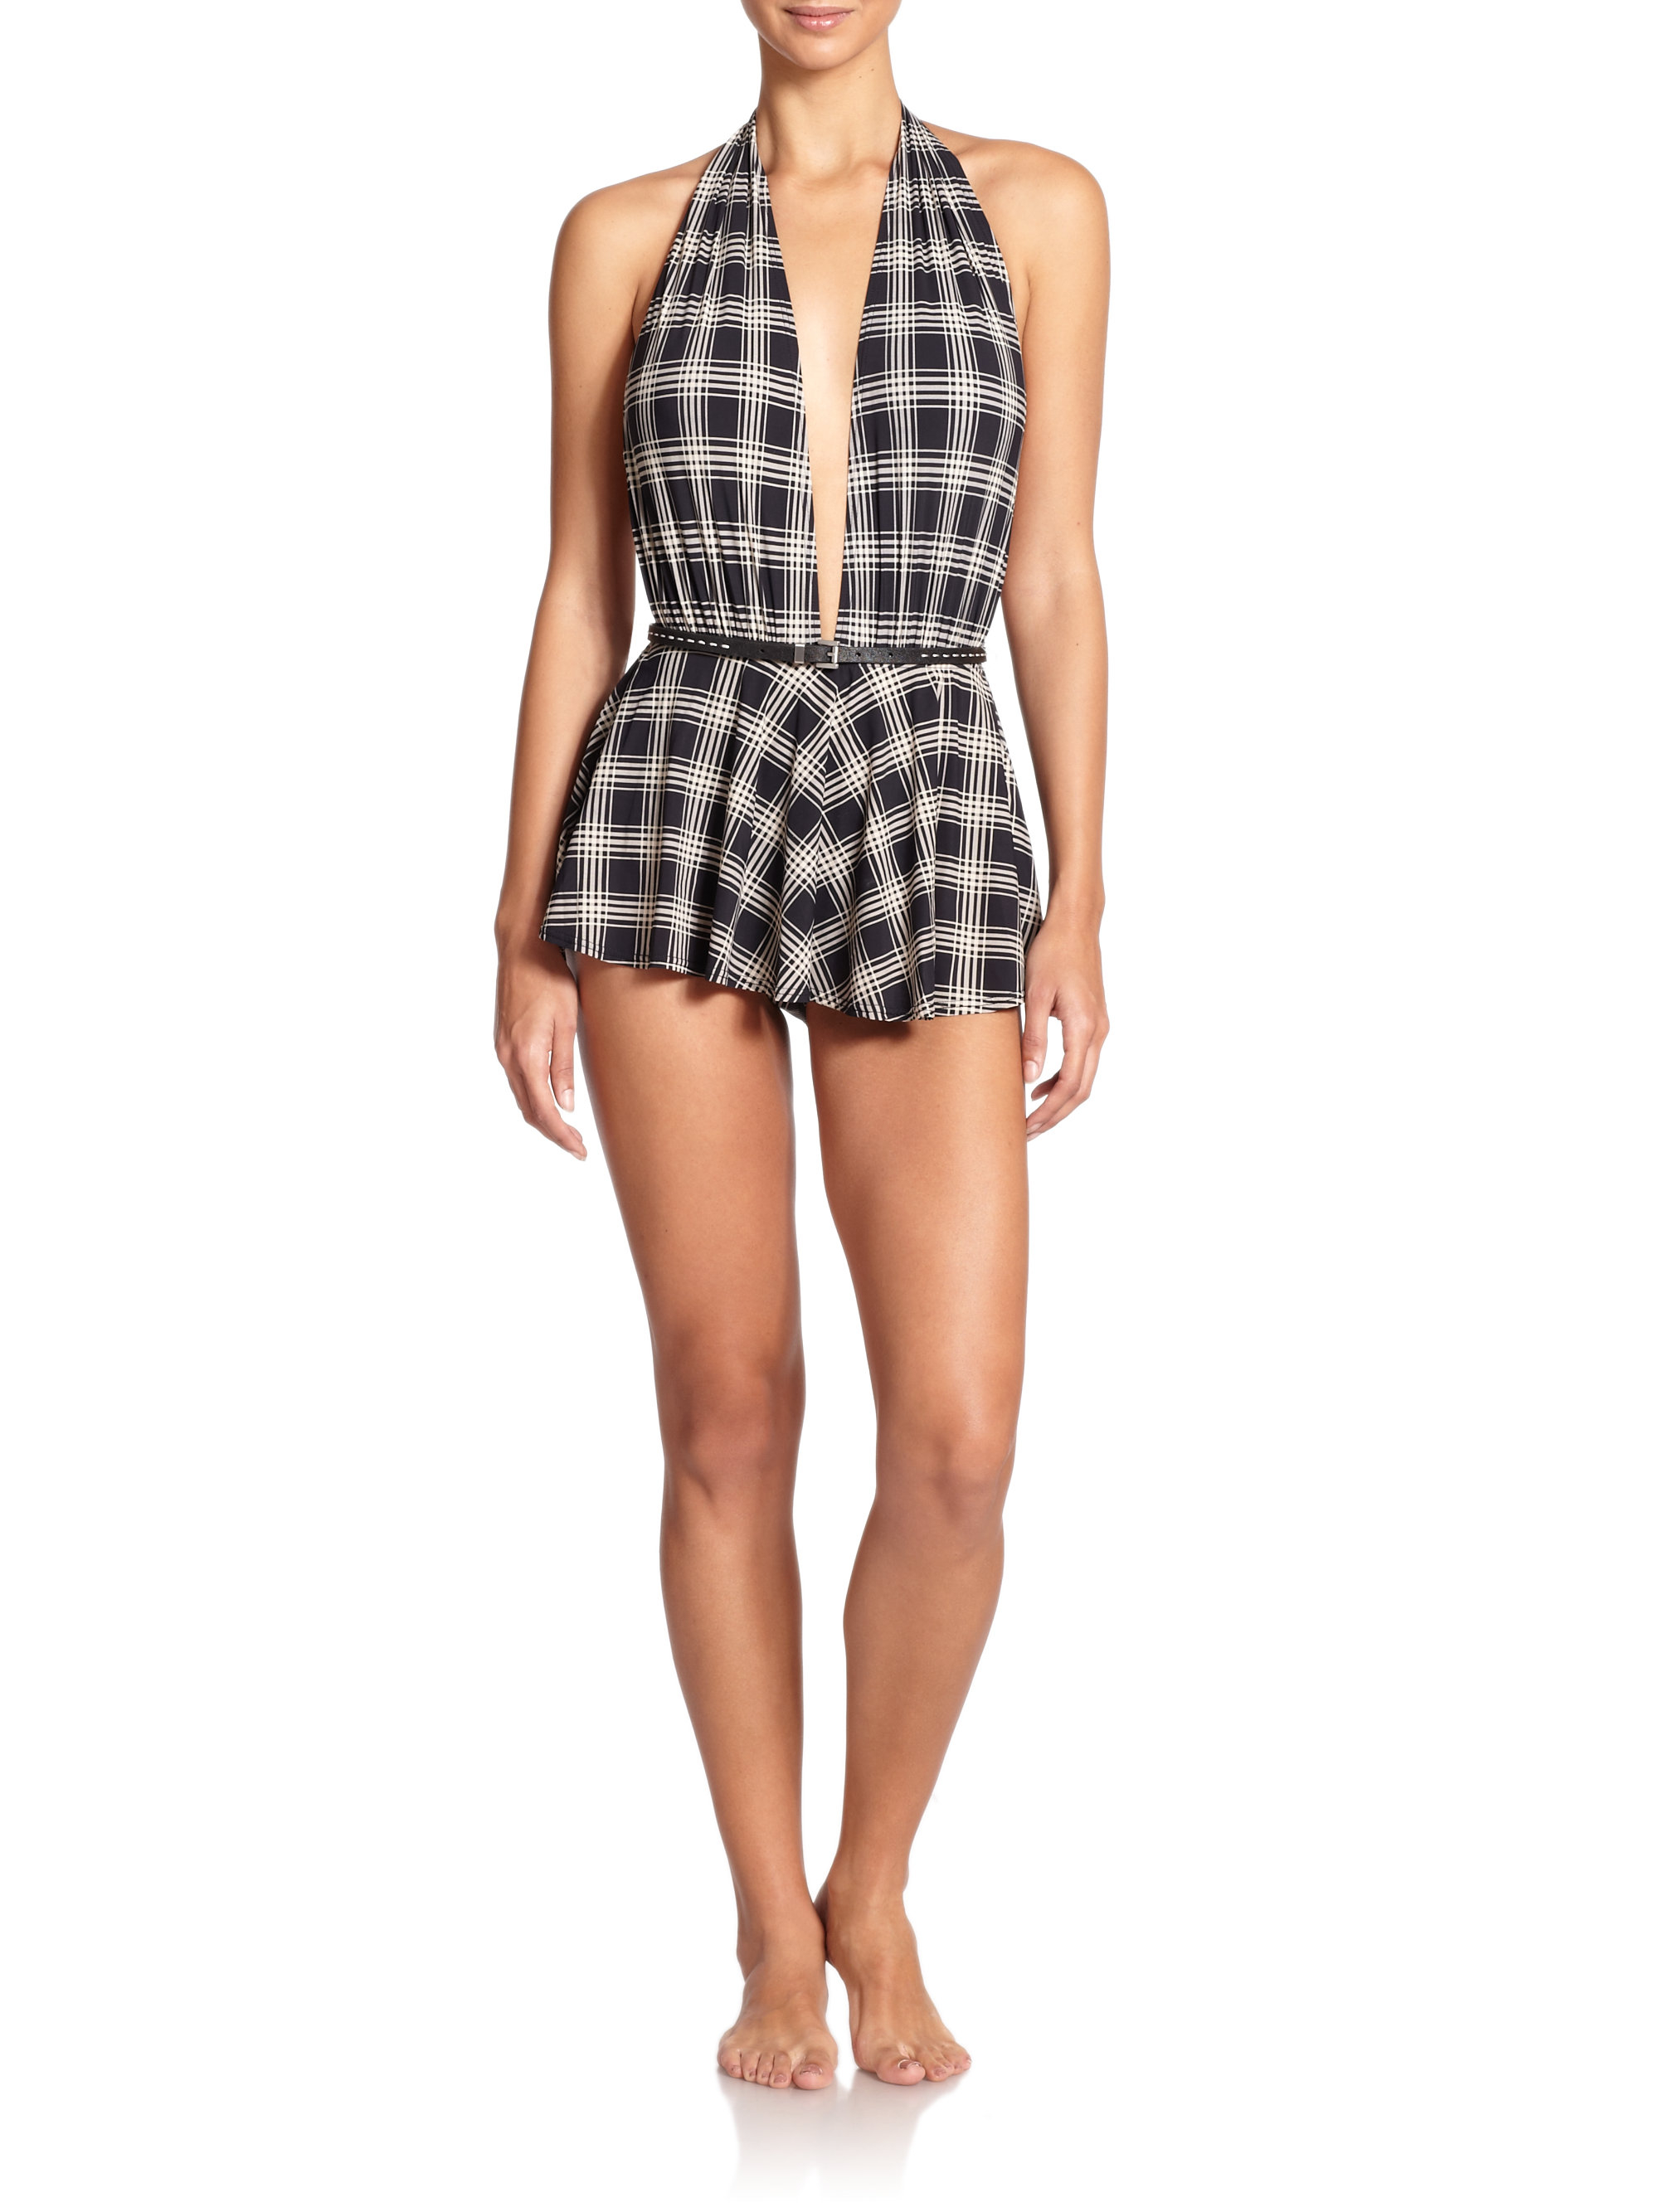 michael kors one piece belted skirted maillot swimsuit lyst. Black Bedroom Furniture Sets. Home Design Ideas